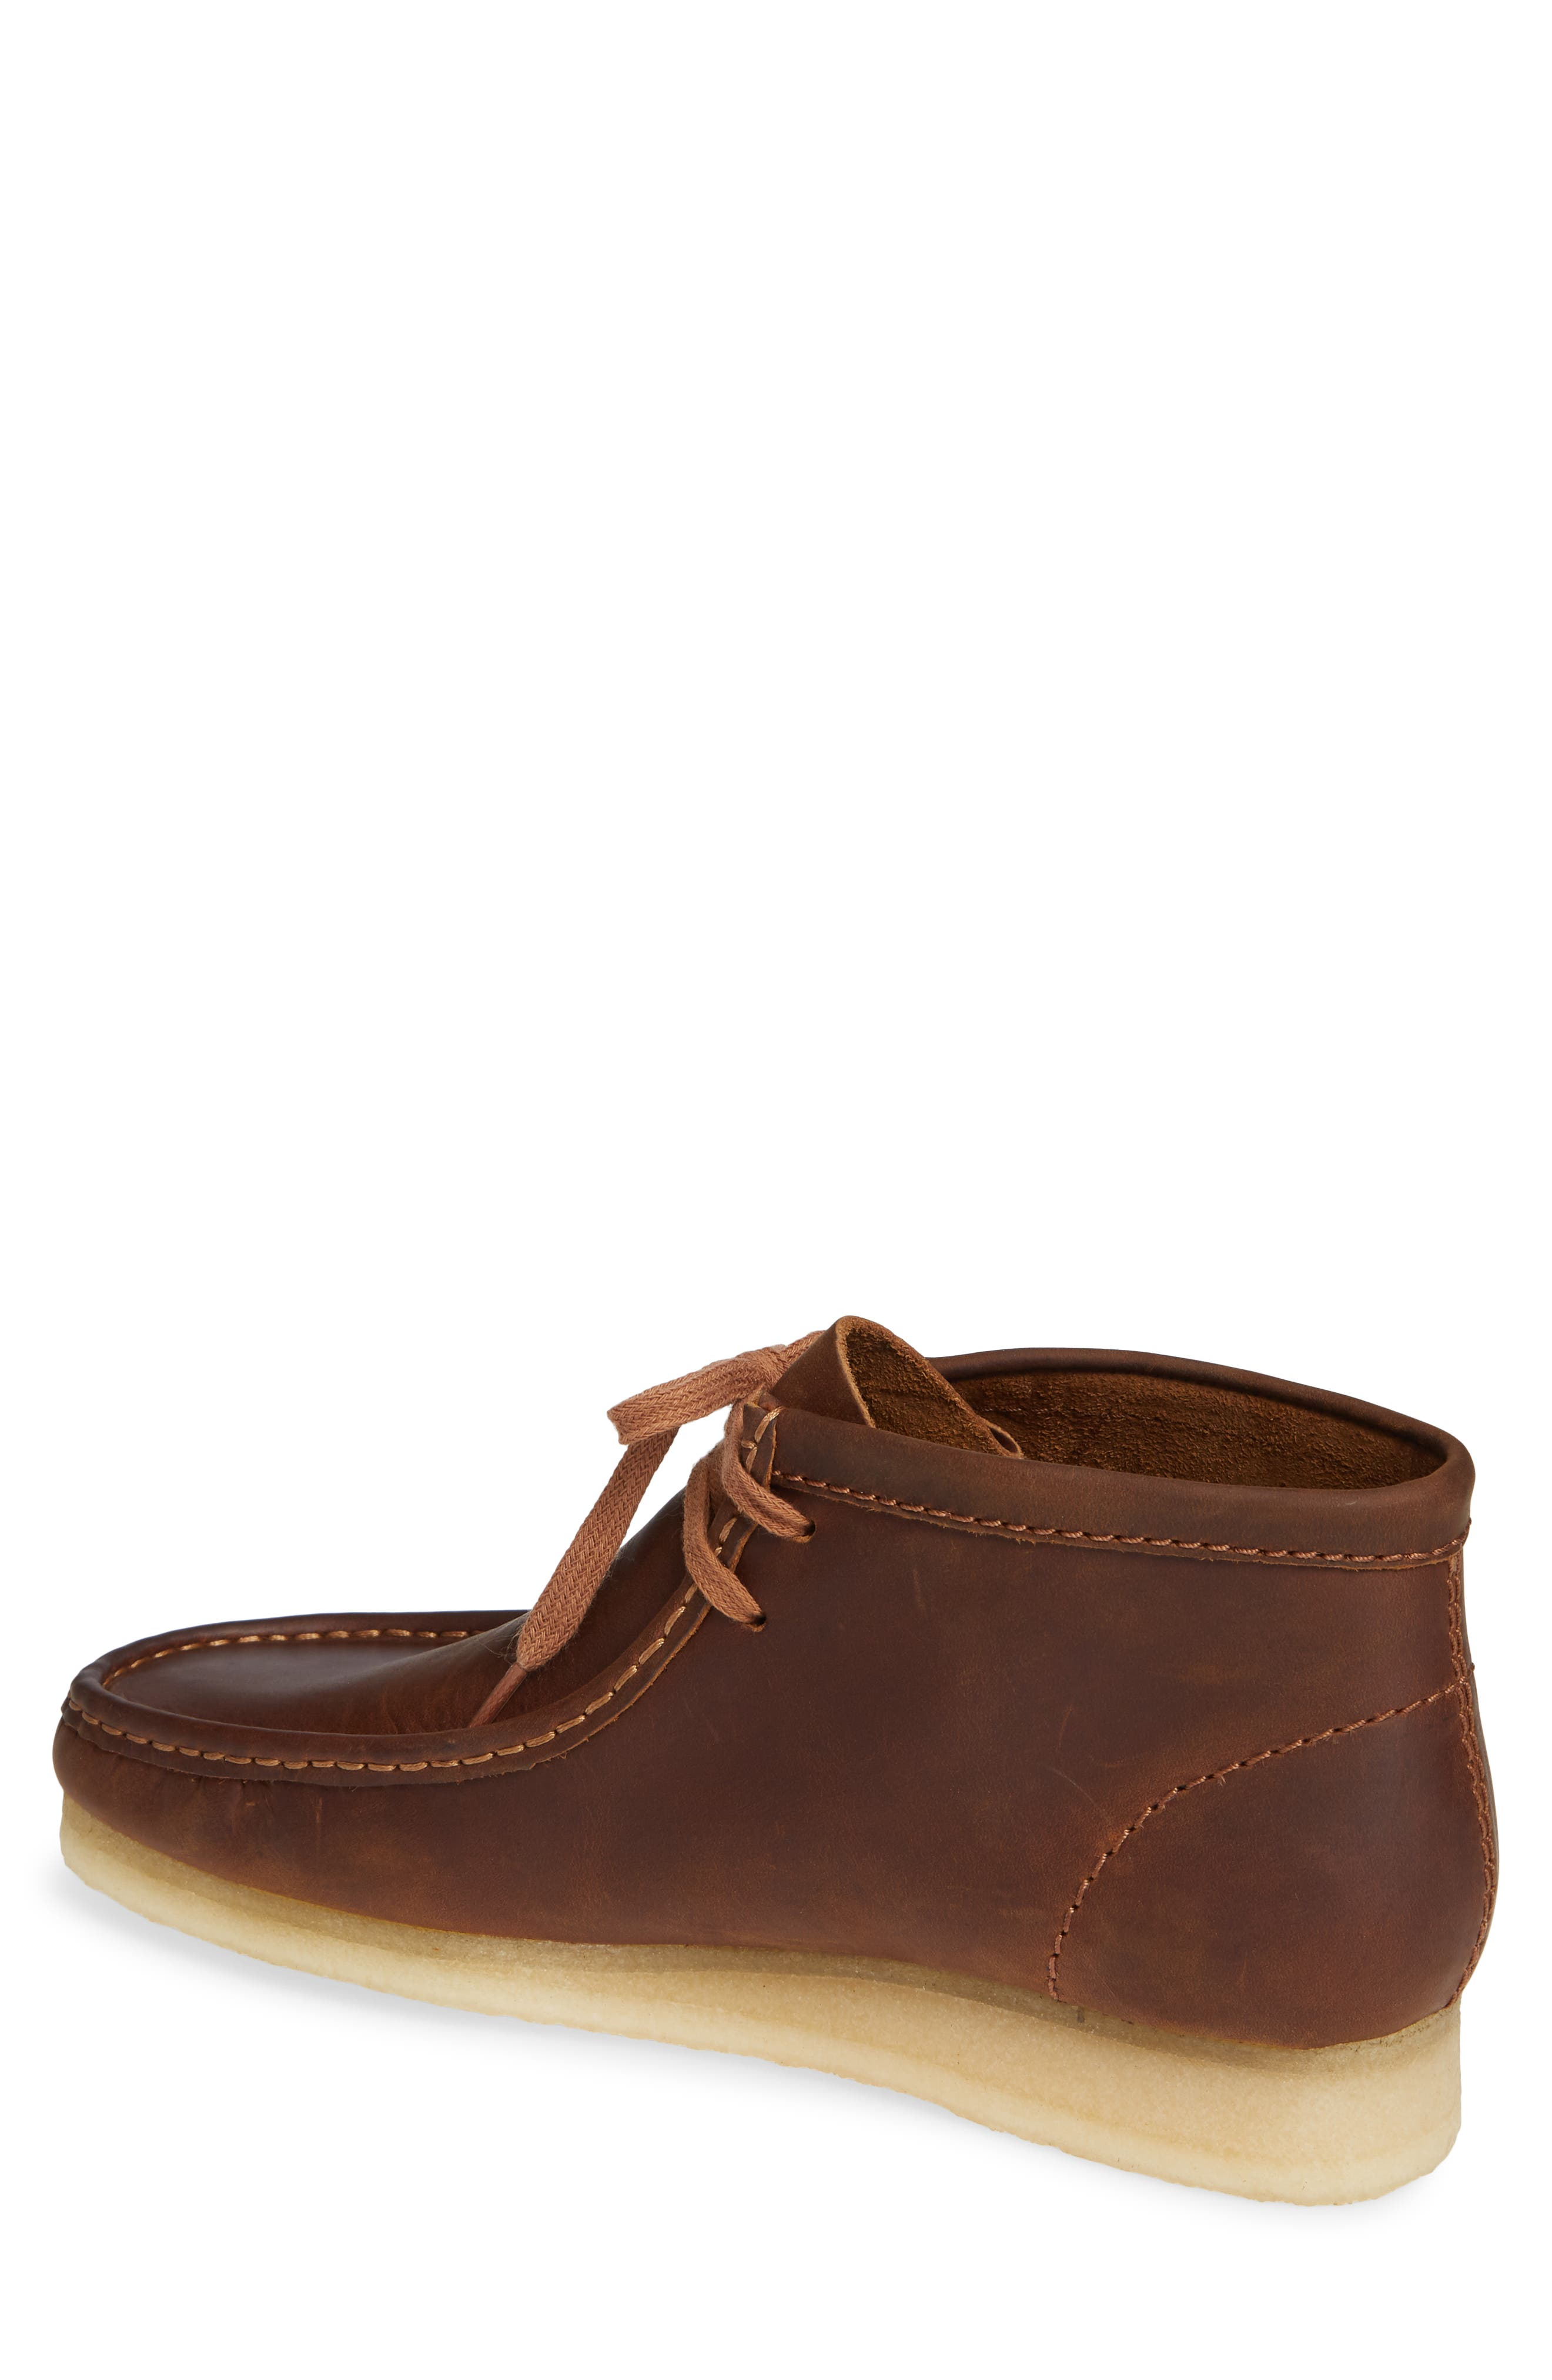 Wallabee Boot,                             Alternate thumbnail 2, color,                             BROWN LEATHER